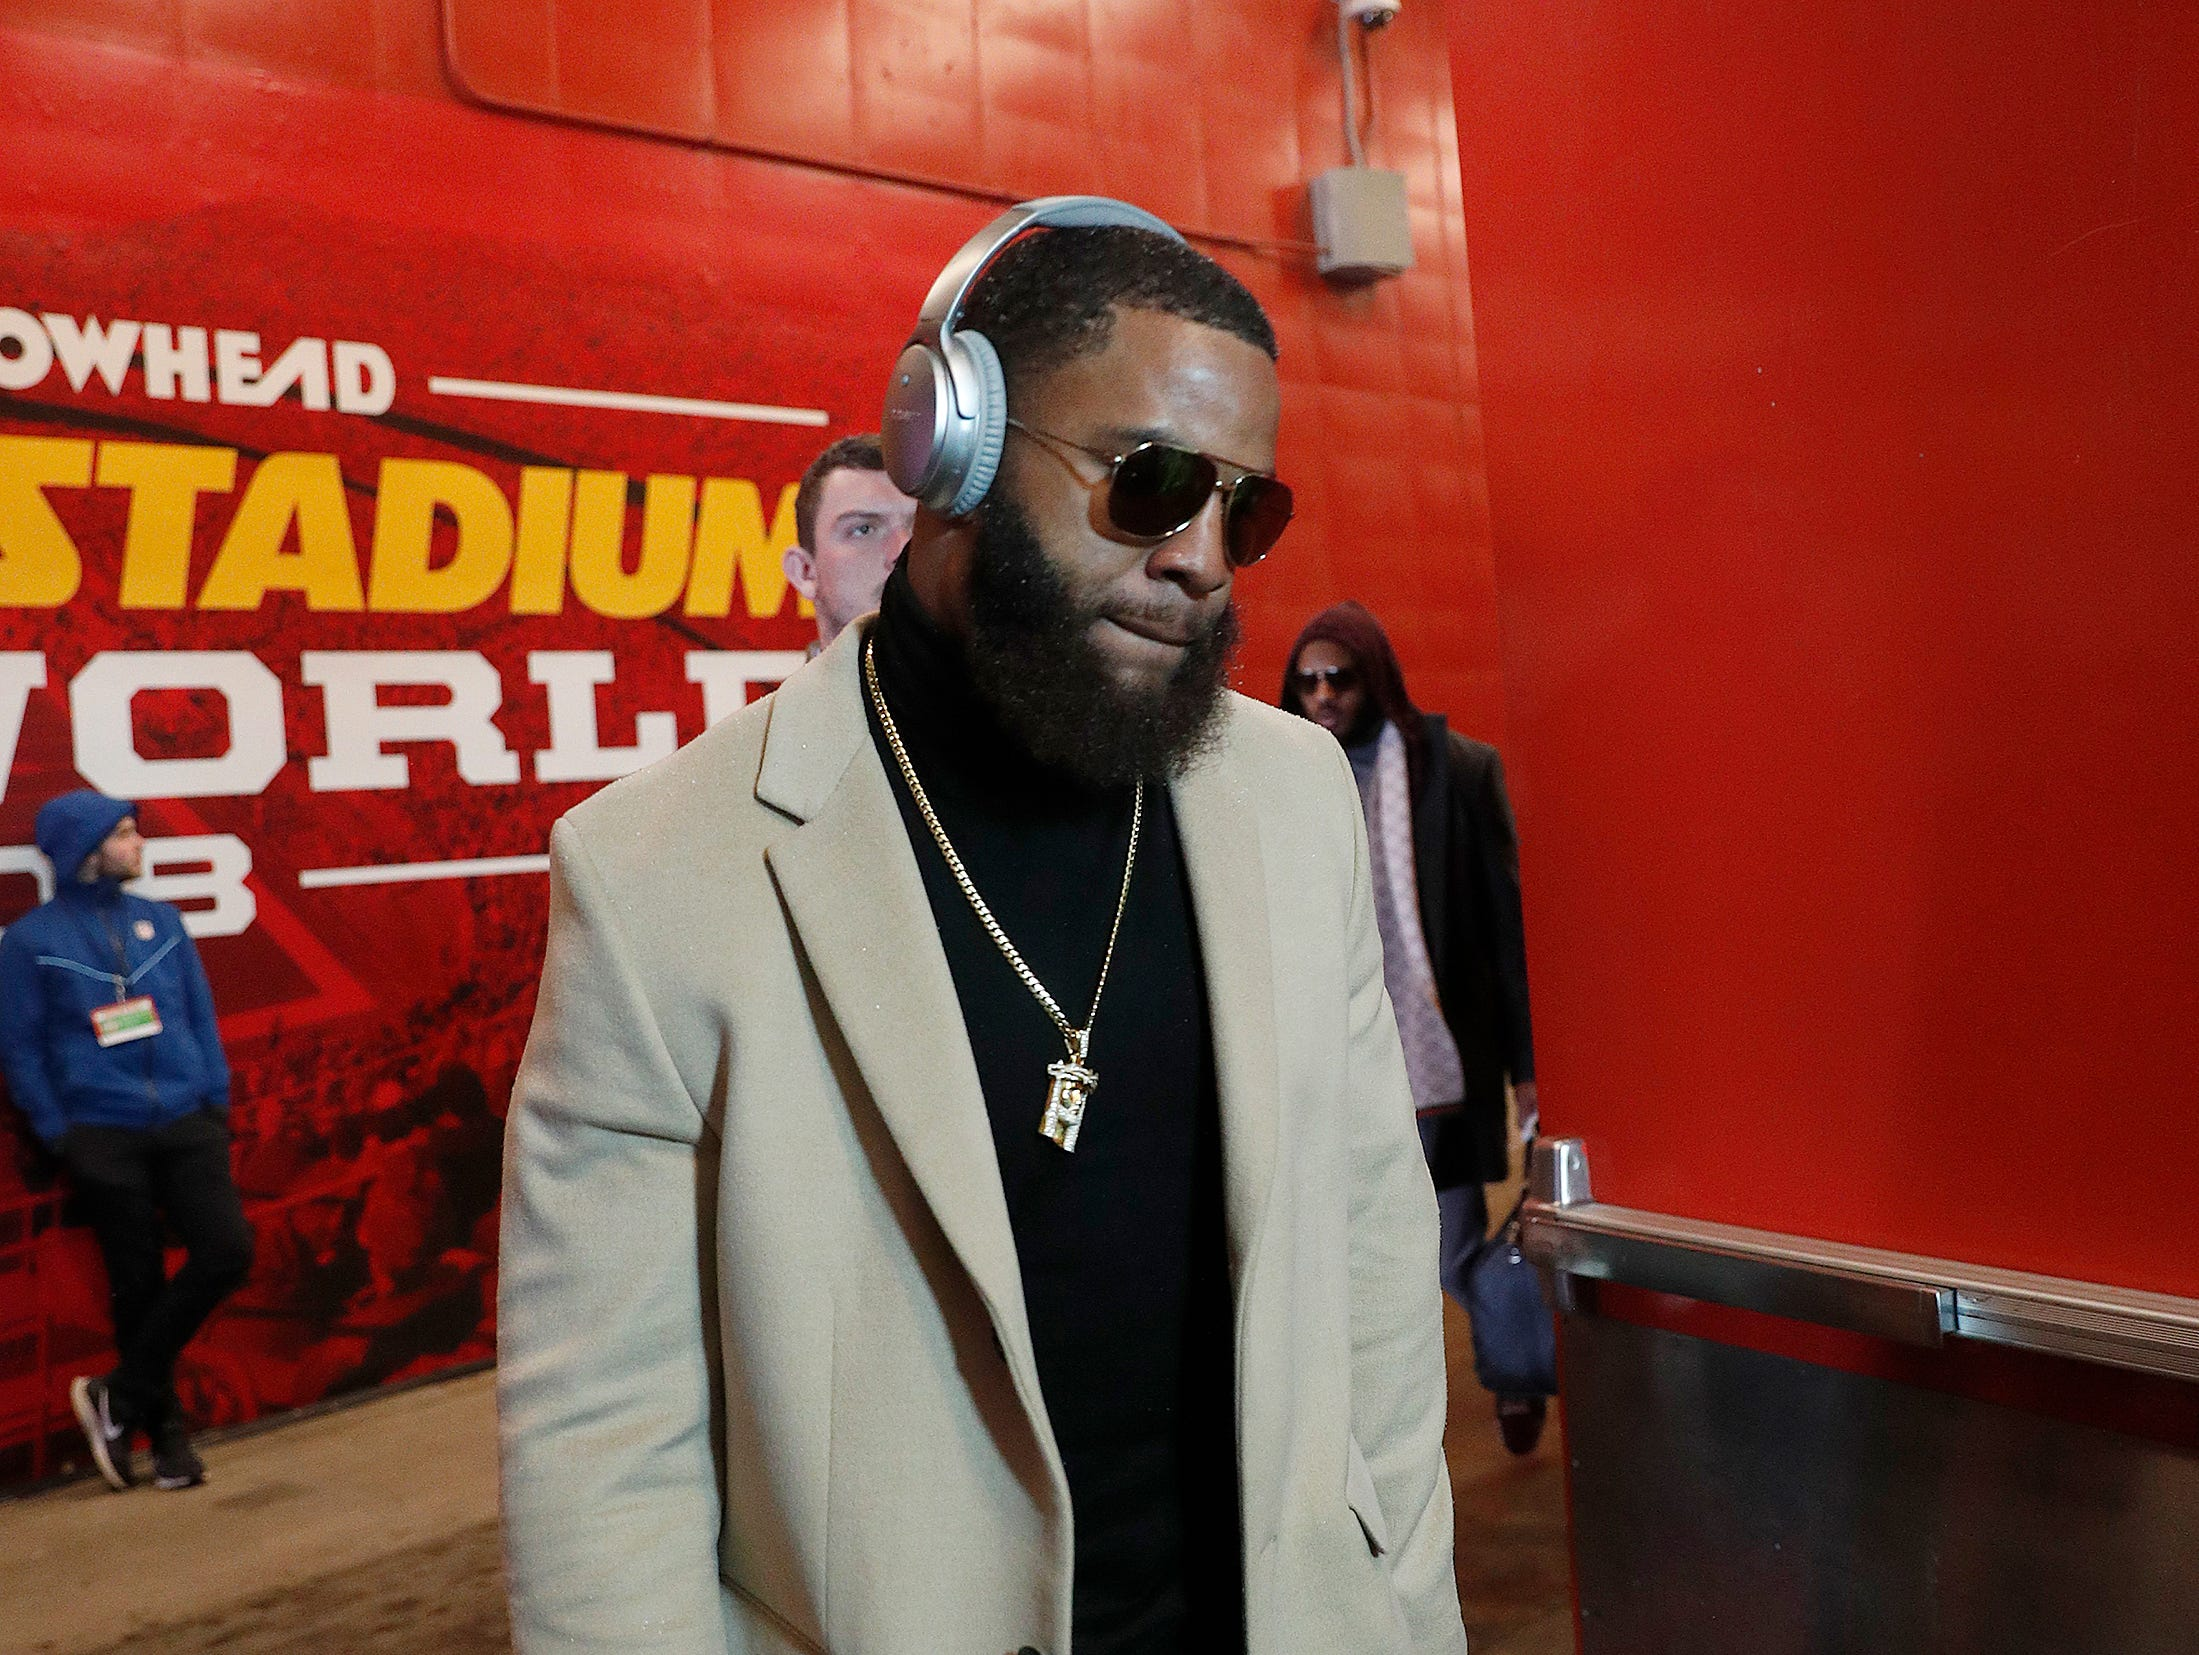 The Indianapolis Colts arrive for their game against the Kansas City Chiefs at Arrowhead Stadium in Kansas City, MO., on Saturday, Jan. 12, 2019.